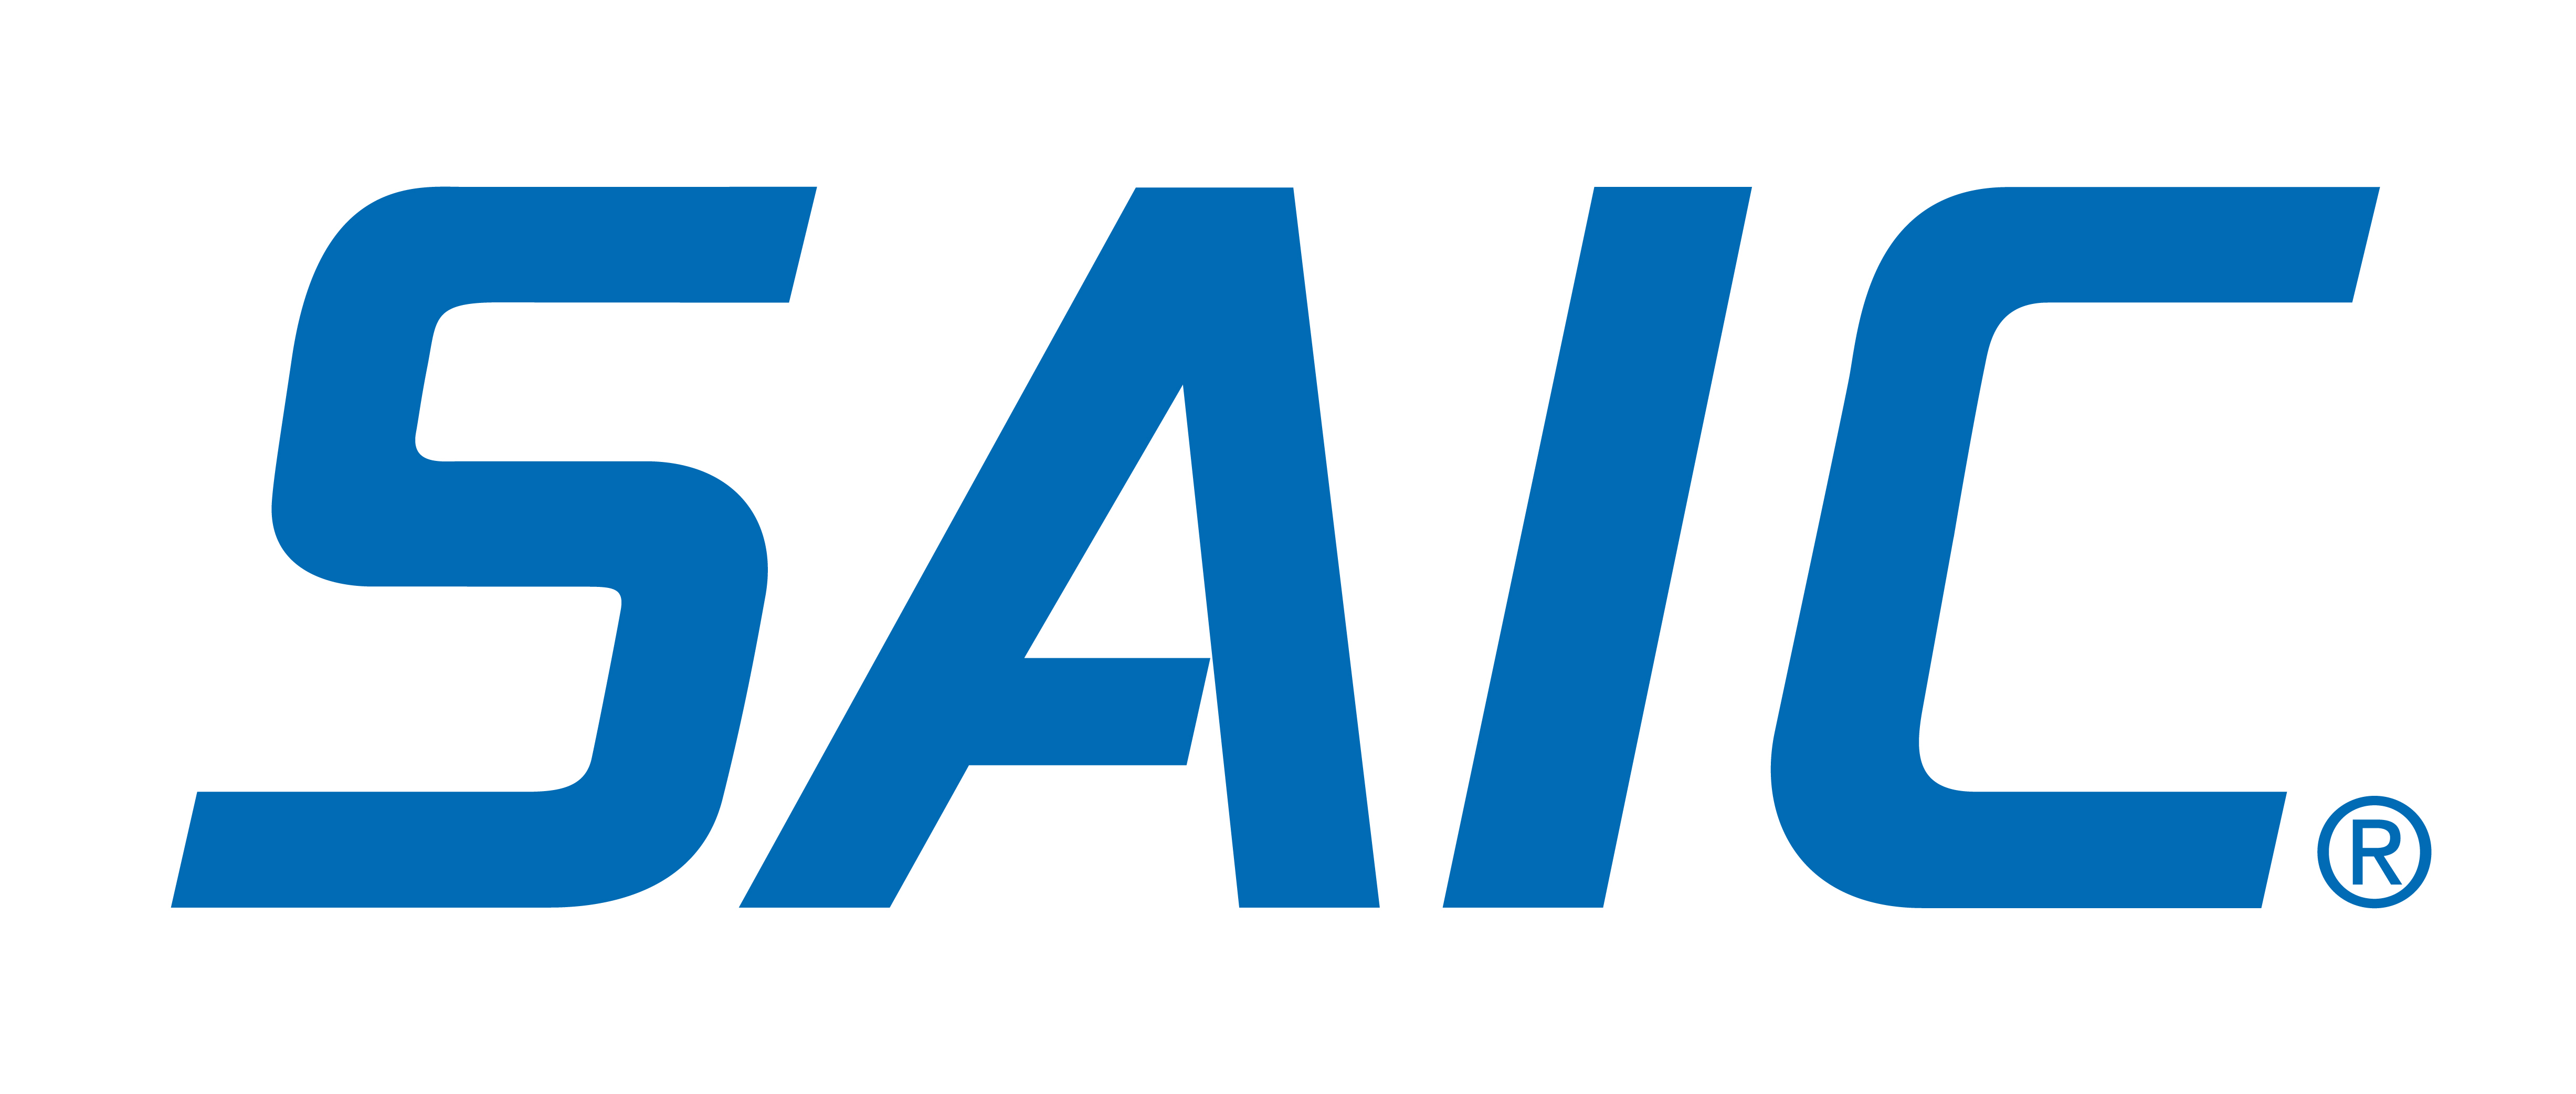 science-applications-international-corp-saic-upgraded-to-8220buy8221-at-zacks-investment-research.jpg